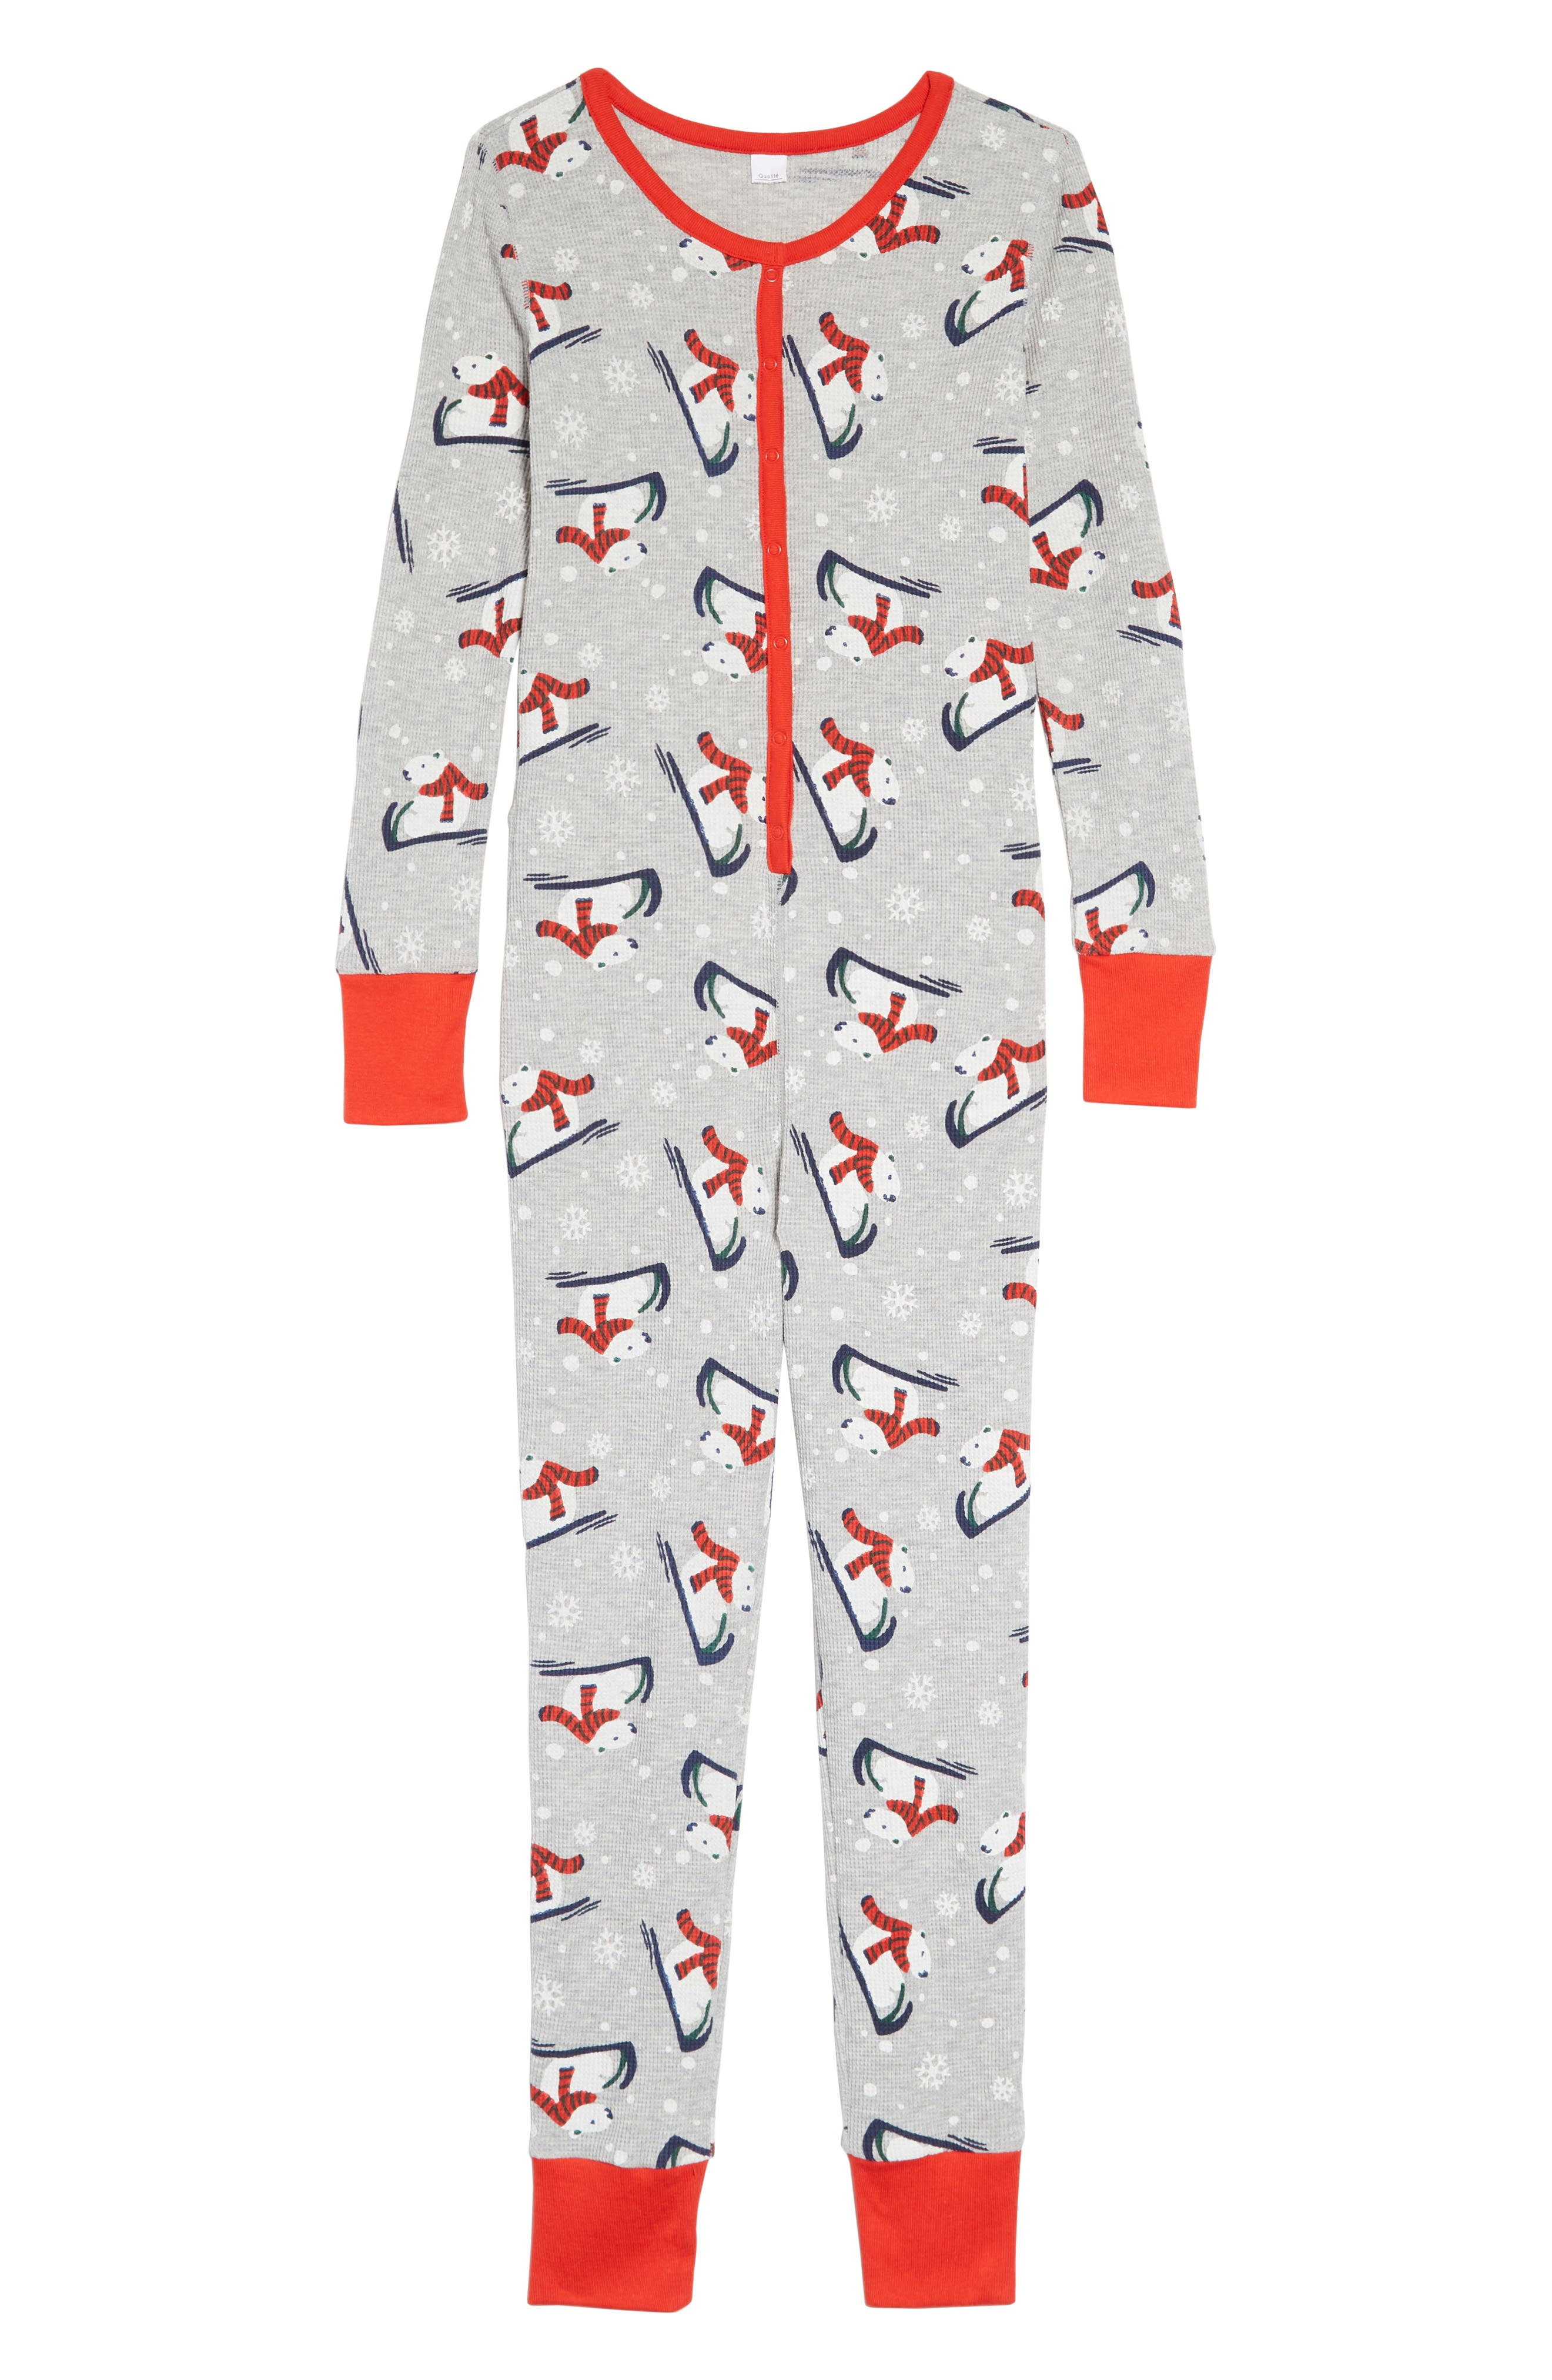 Thermal Fitted One-Piece Pajamas,                         Main,                         color, GREY PEARL HEATHER POLAR BEAR